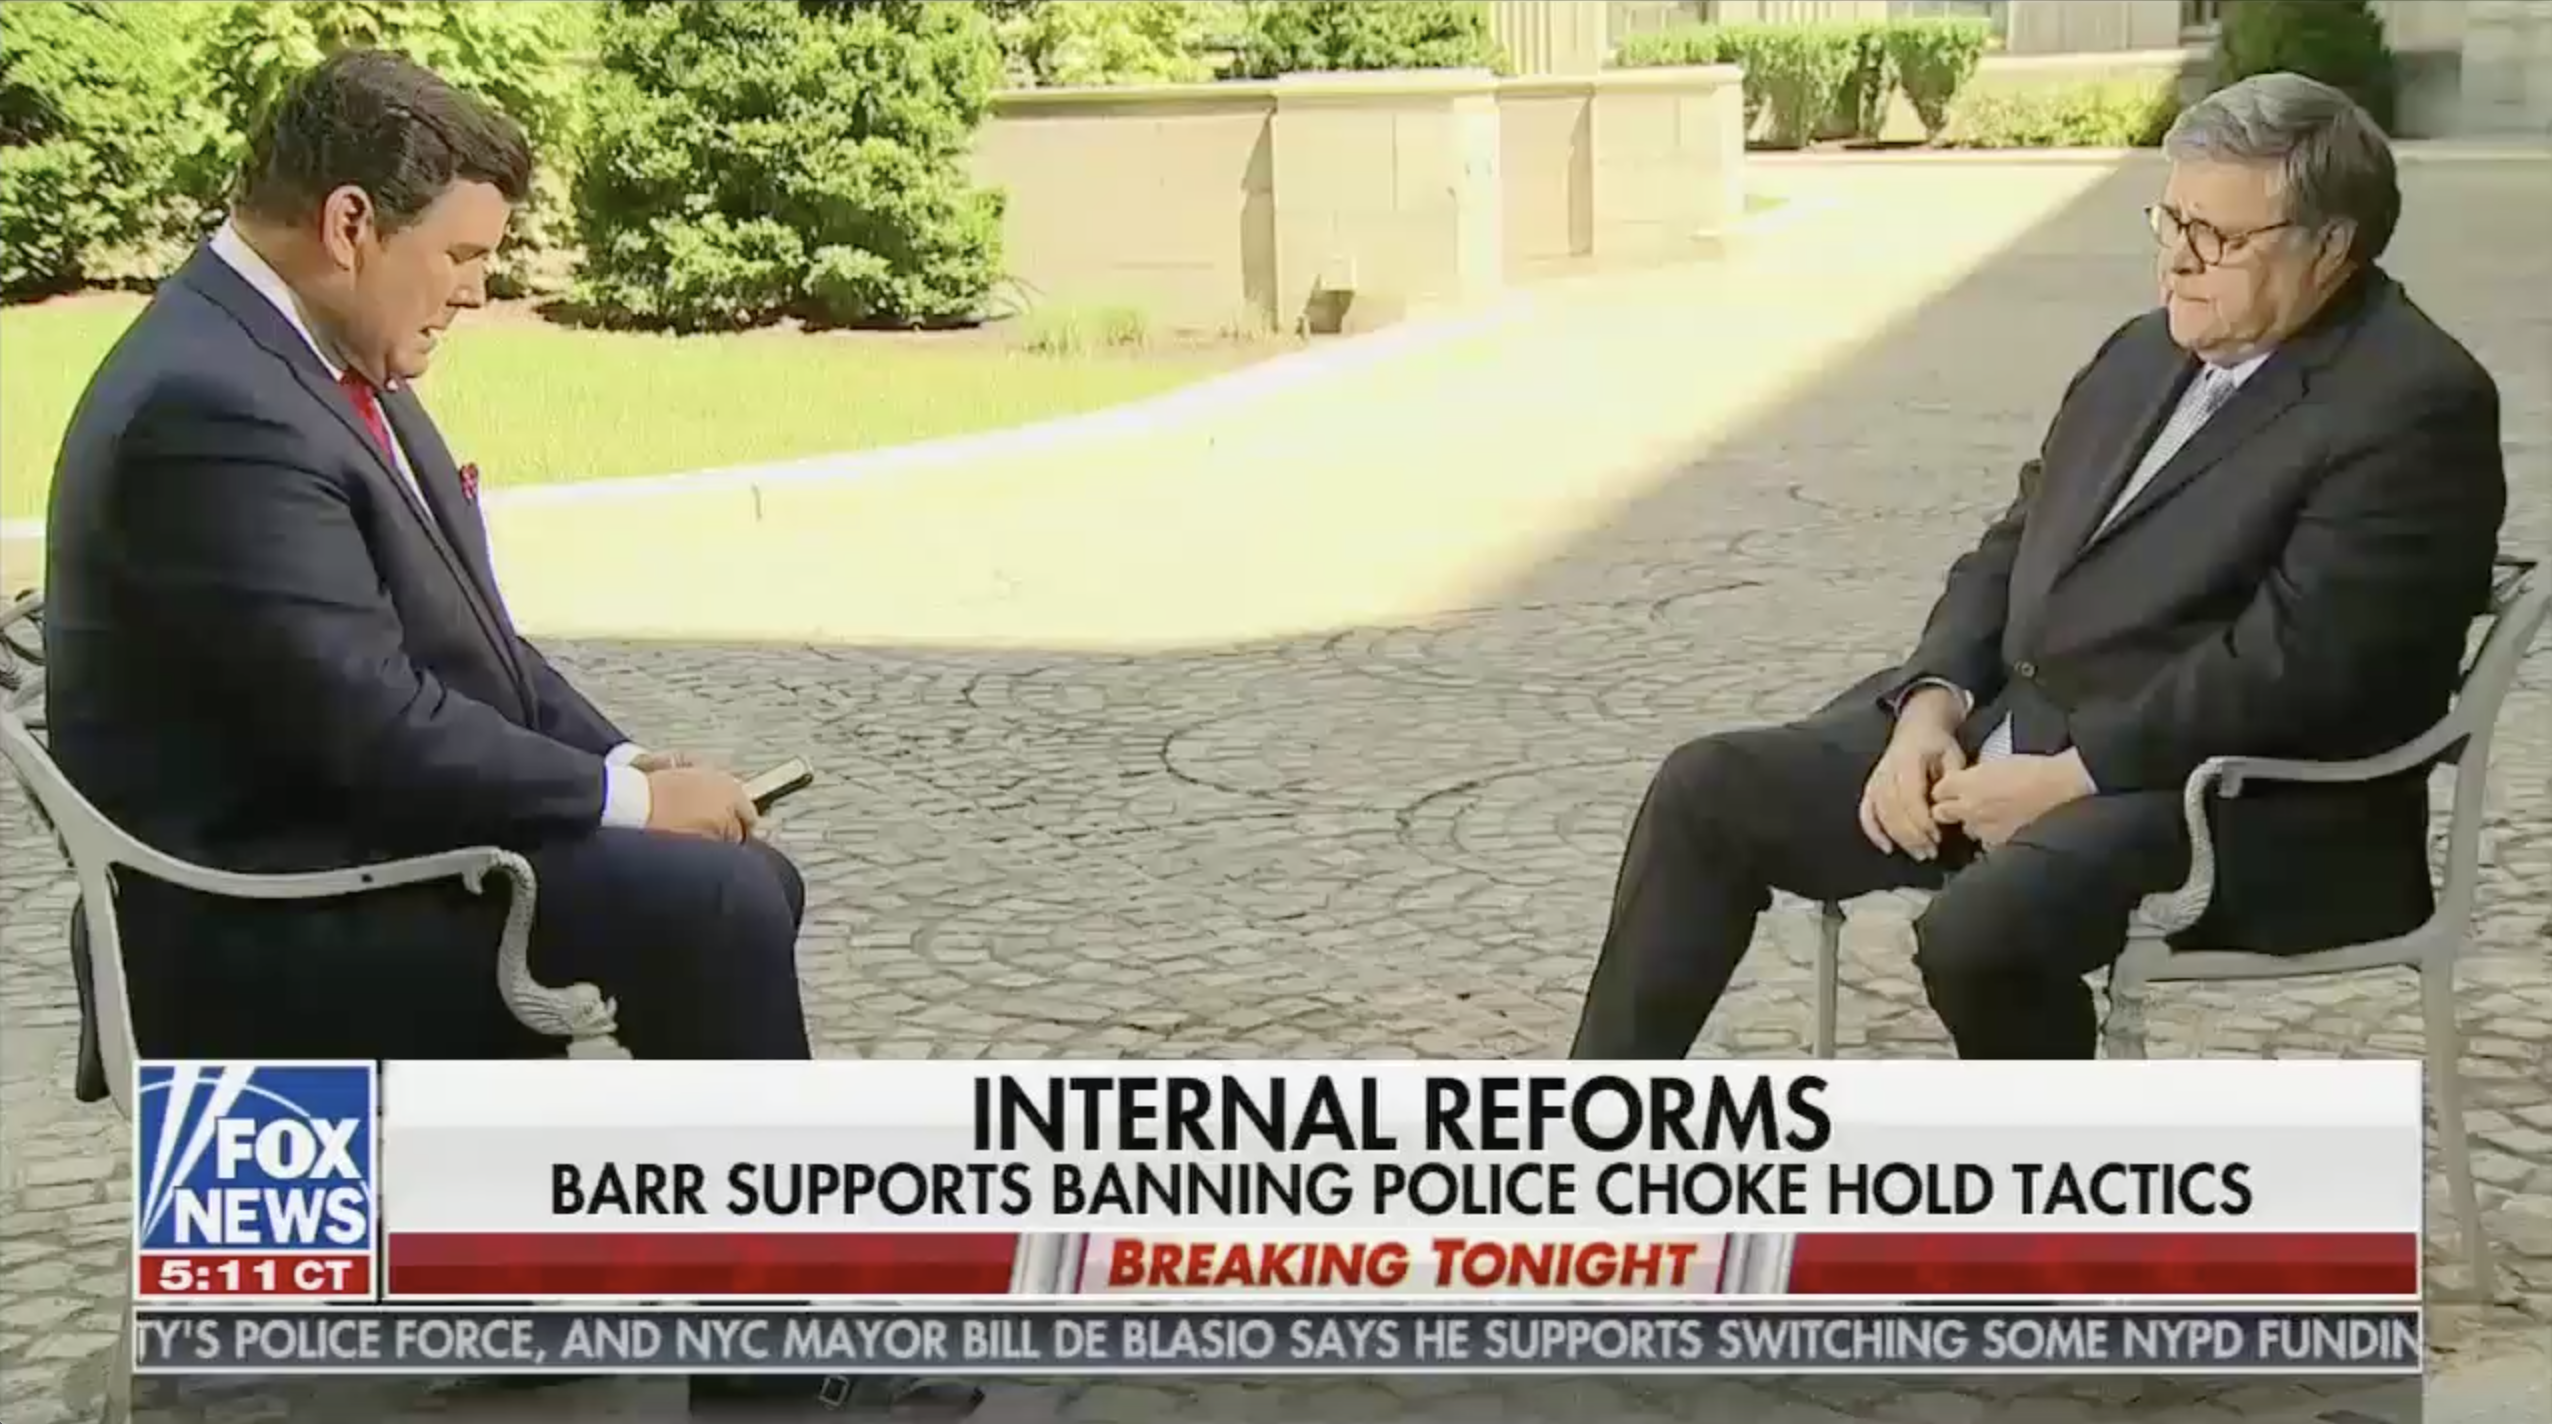 Bret Baier interviews Bill Barr